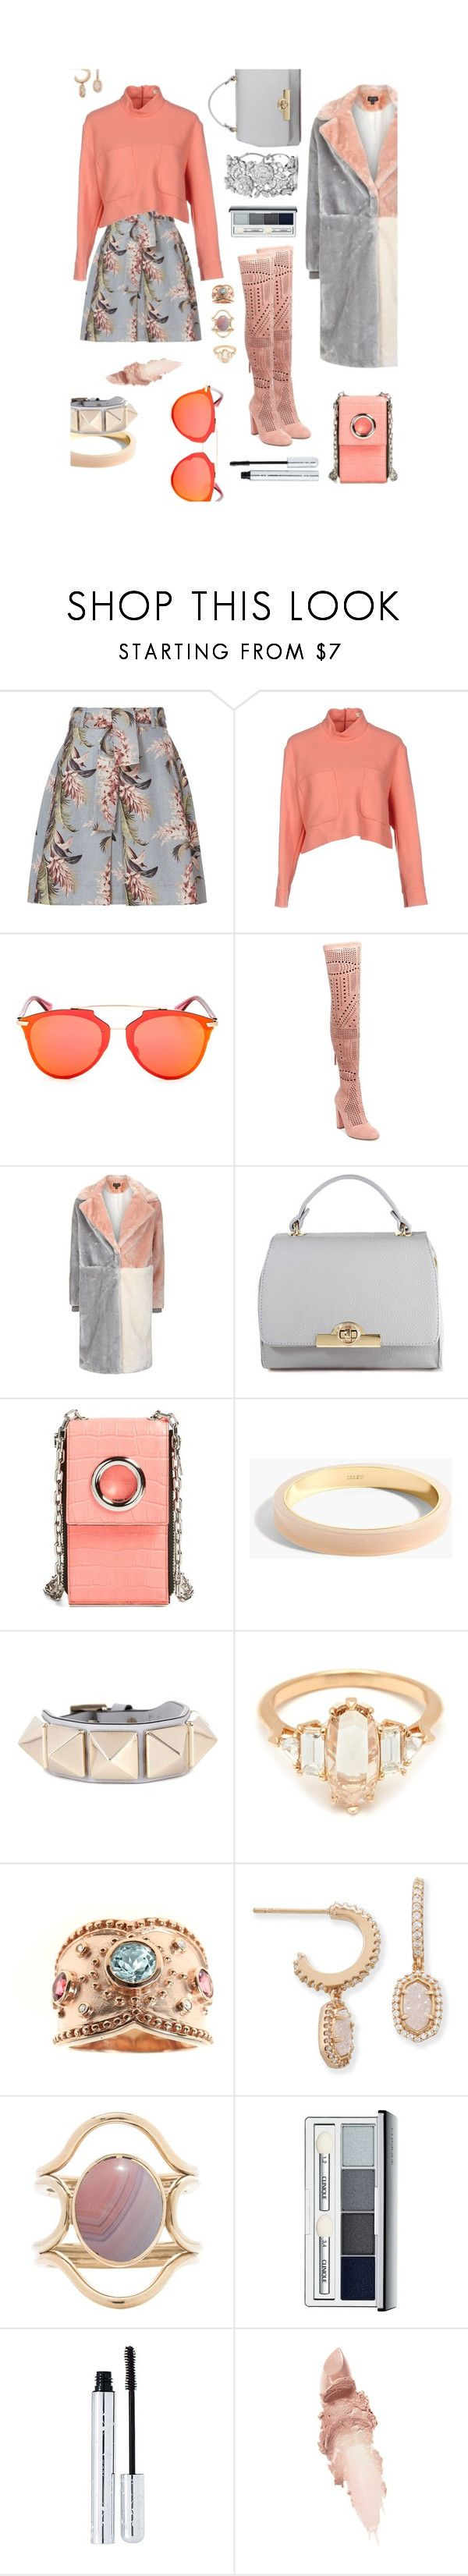 """""""Apricot Frosted"""" by amyopt ❤ liked on Polyvore featuring Zimmermann, Issa, Christian Dior, Steve Madden, Topshop, Alexander Wang, J.Crew, Valentino, Dallas Prince and Kendra Scott"""